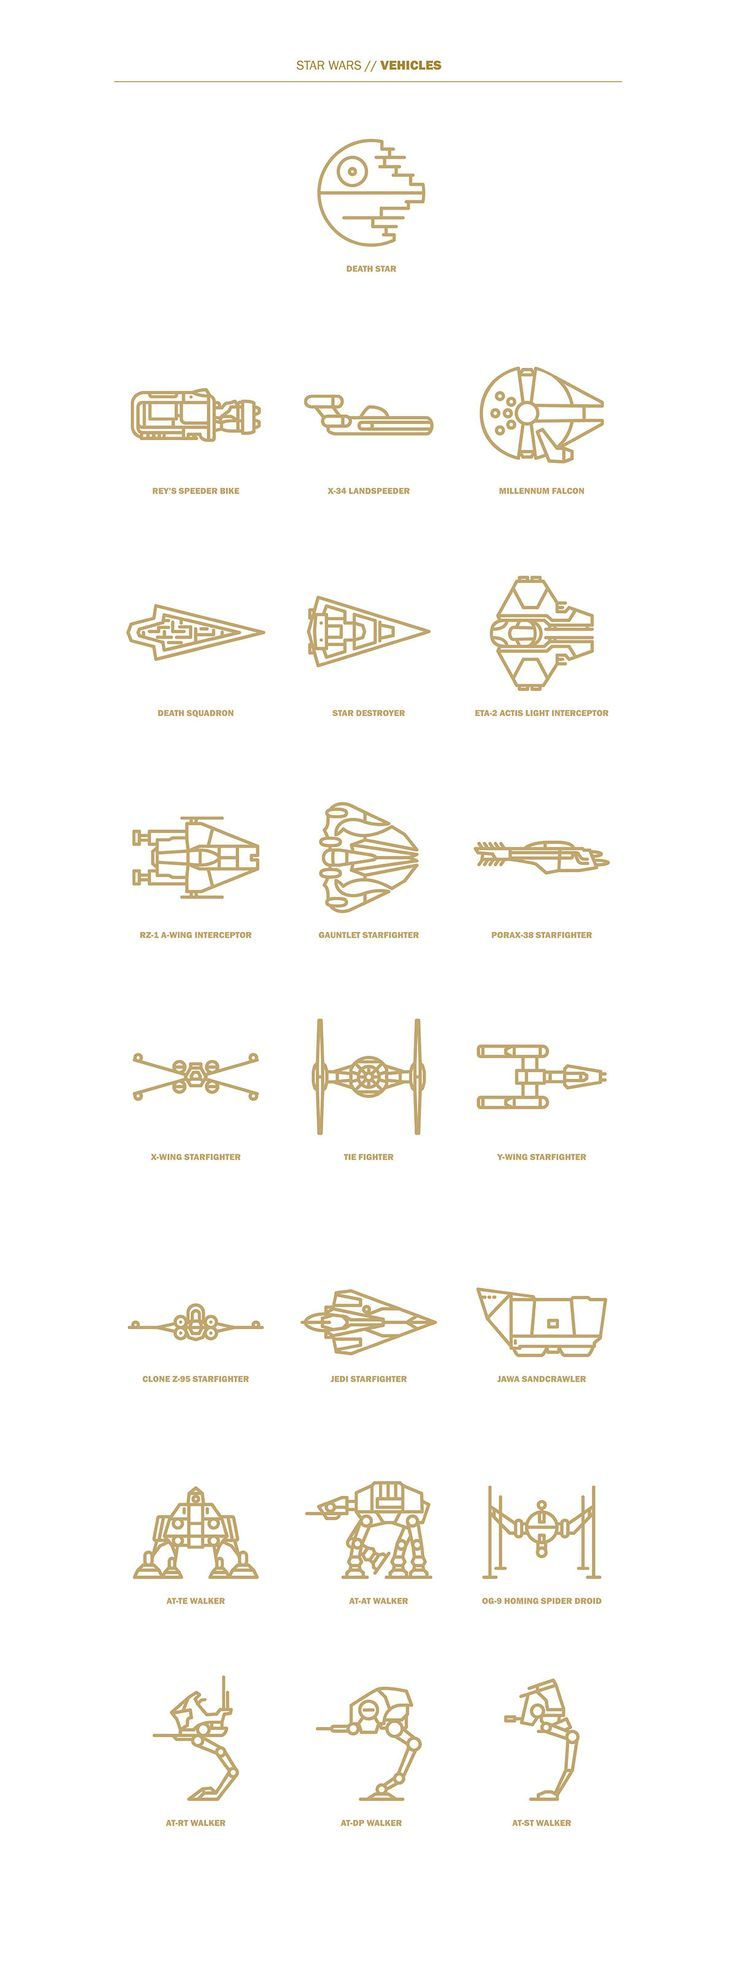 #STarwars Pictos I could totally draw that!! Maybe something for https://Addgeeks.com ?